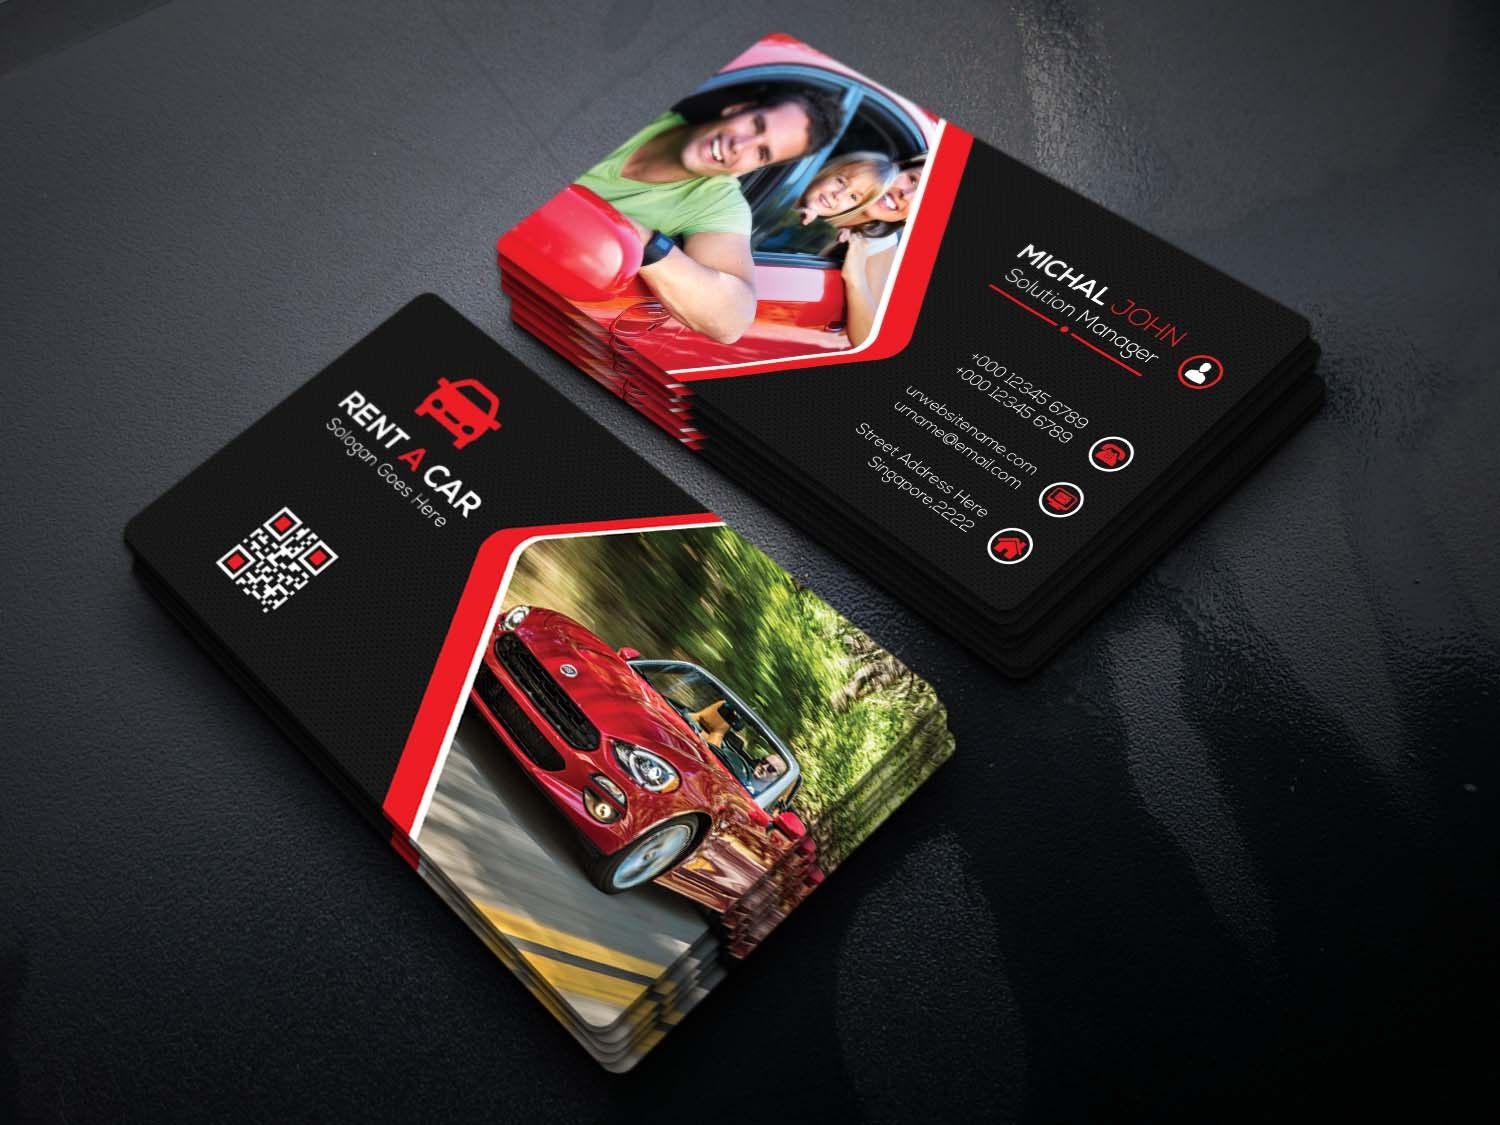 Rent A Car Business Card by sumi akther1 on Dribbble